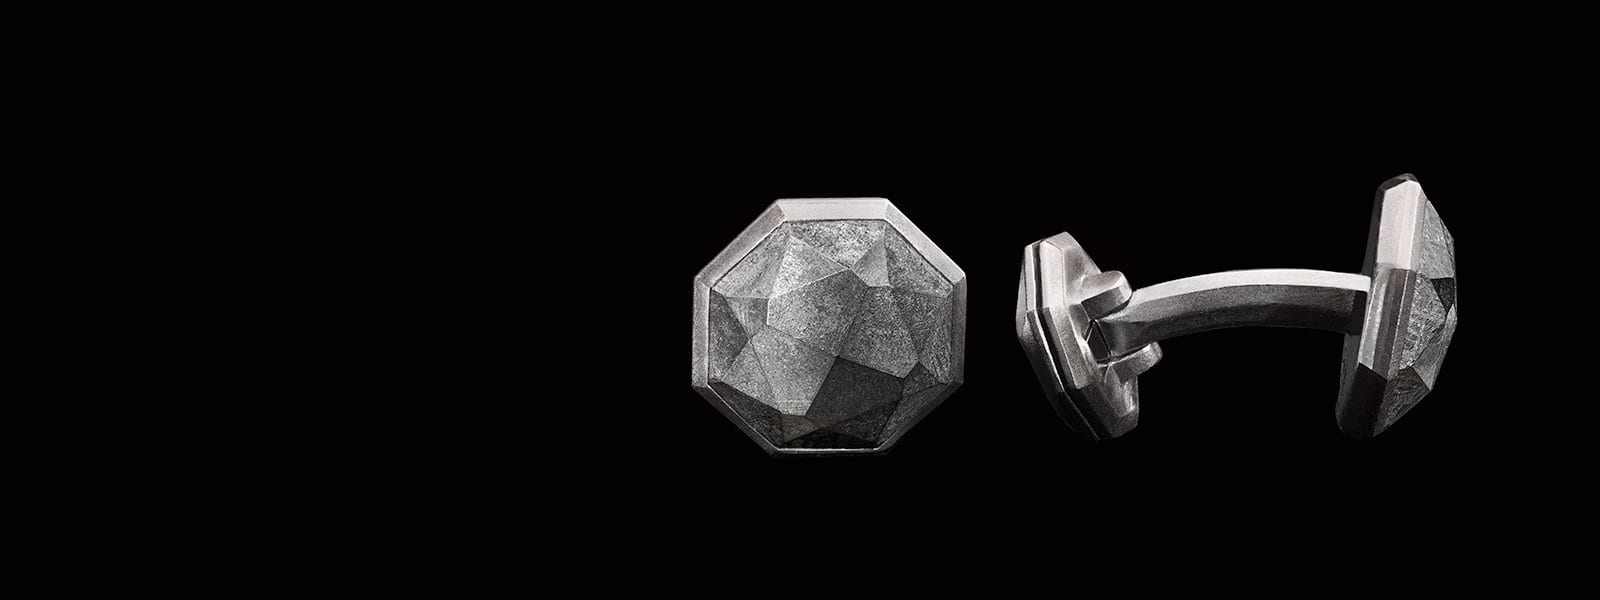 David Yurman men's Meteorite cufflinks on a black background